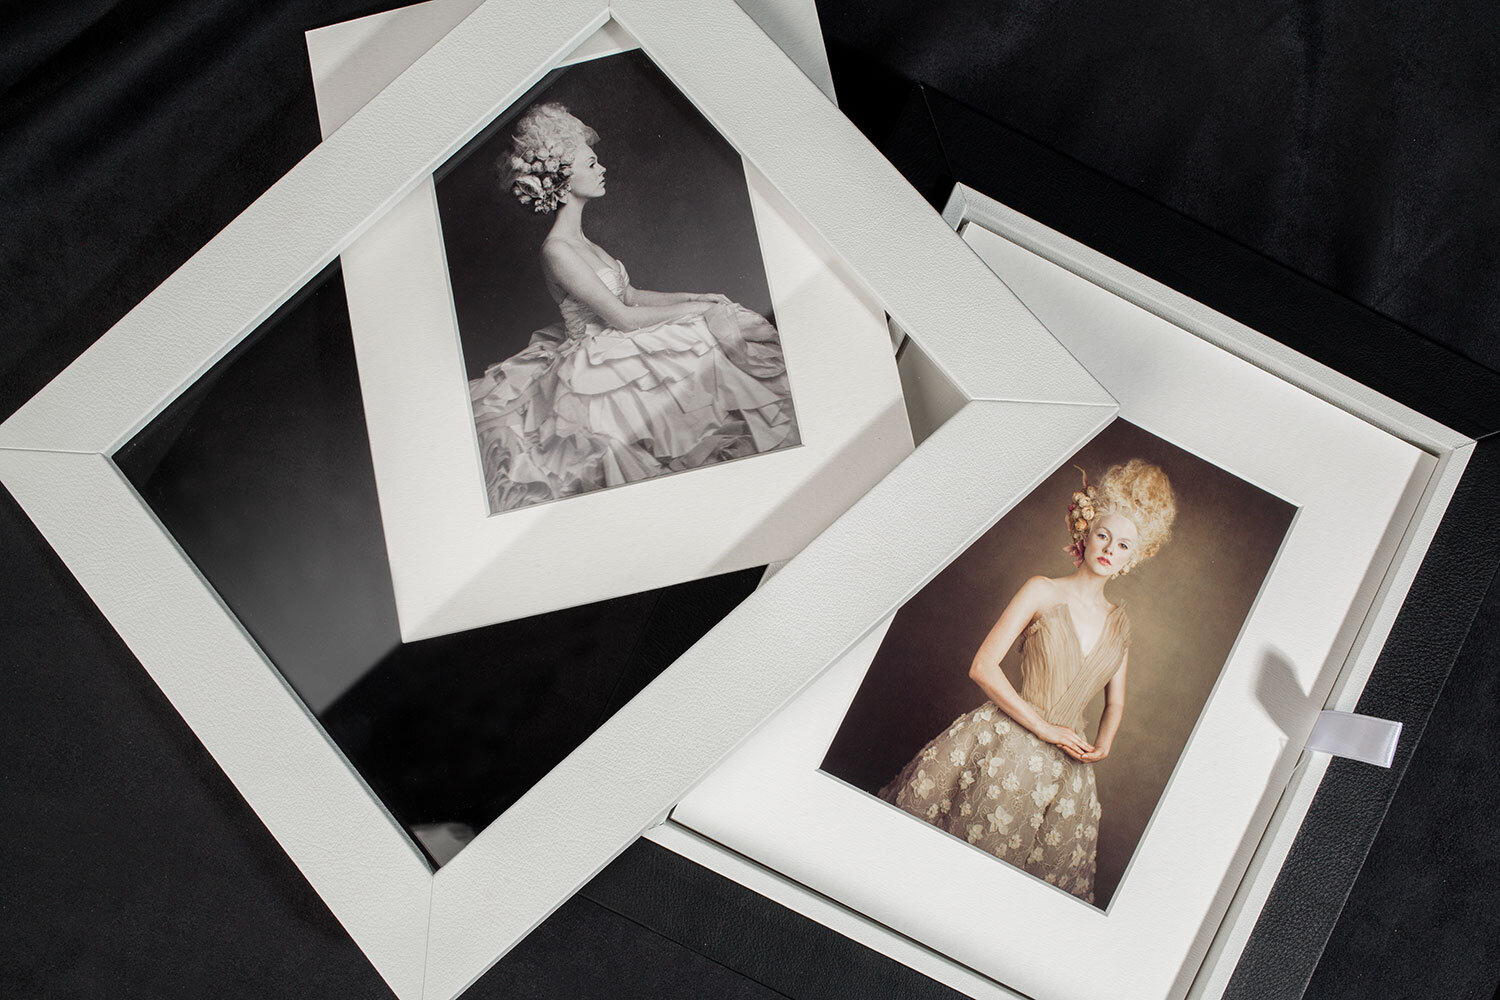 Reveal Box - The reveal box is your gift with any 10 Matted 5x7 or 8x10 prints. These are $150 each and are printed on the highest quality HD paper - hand made in Italy.